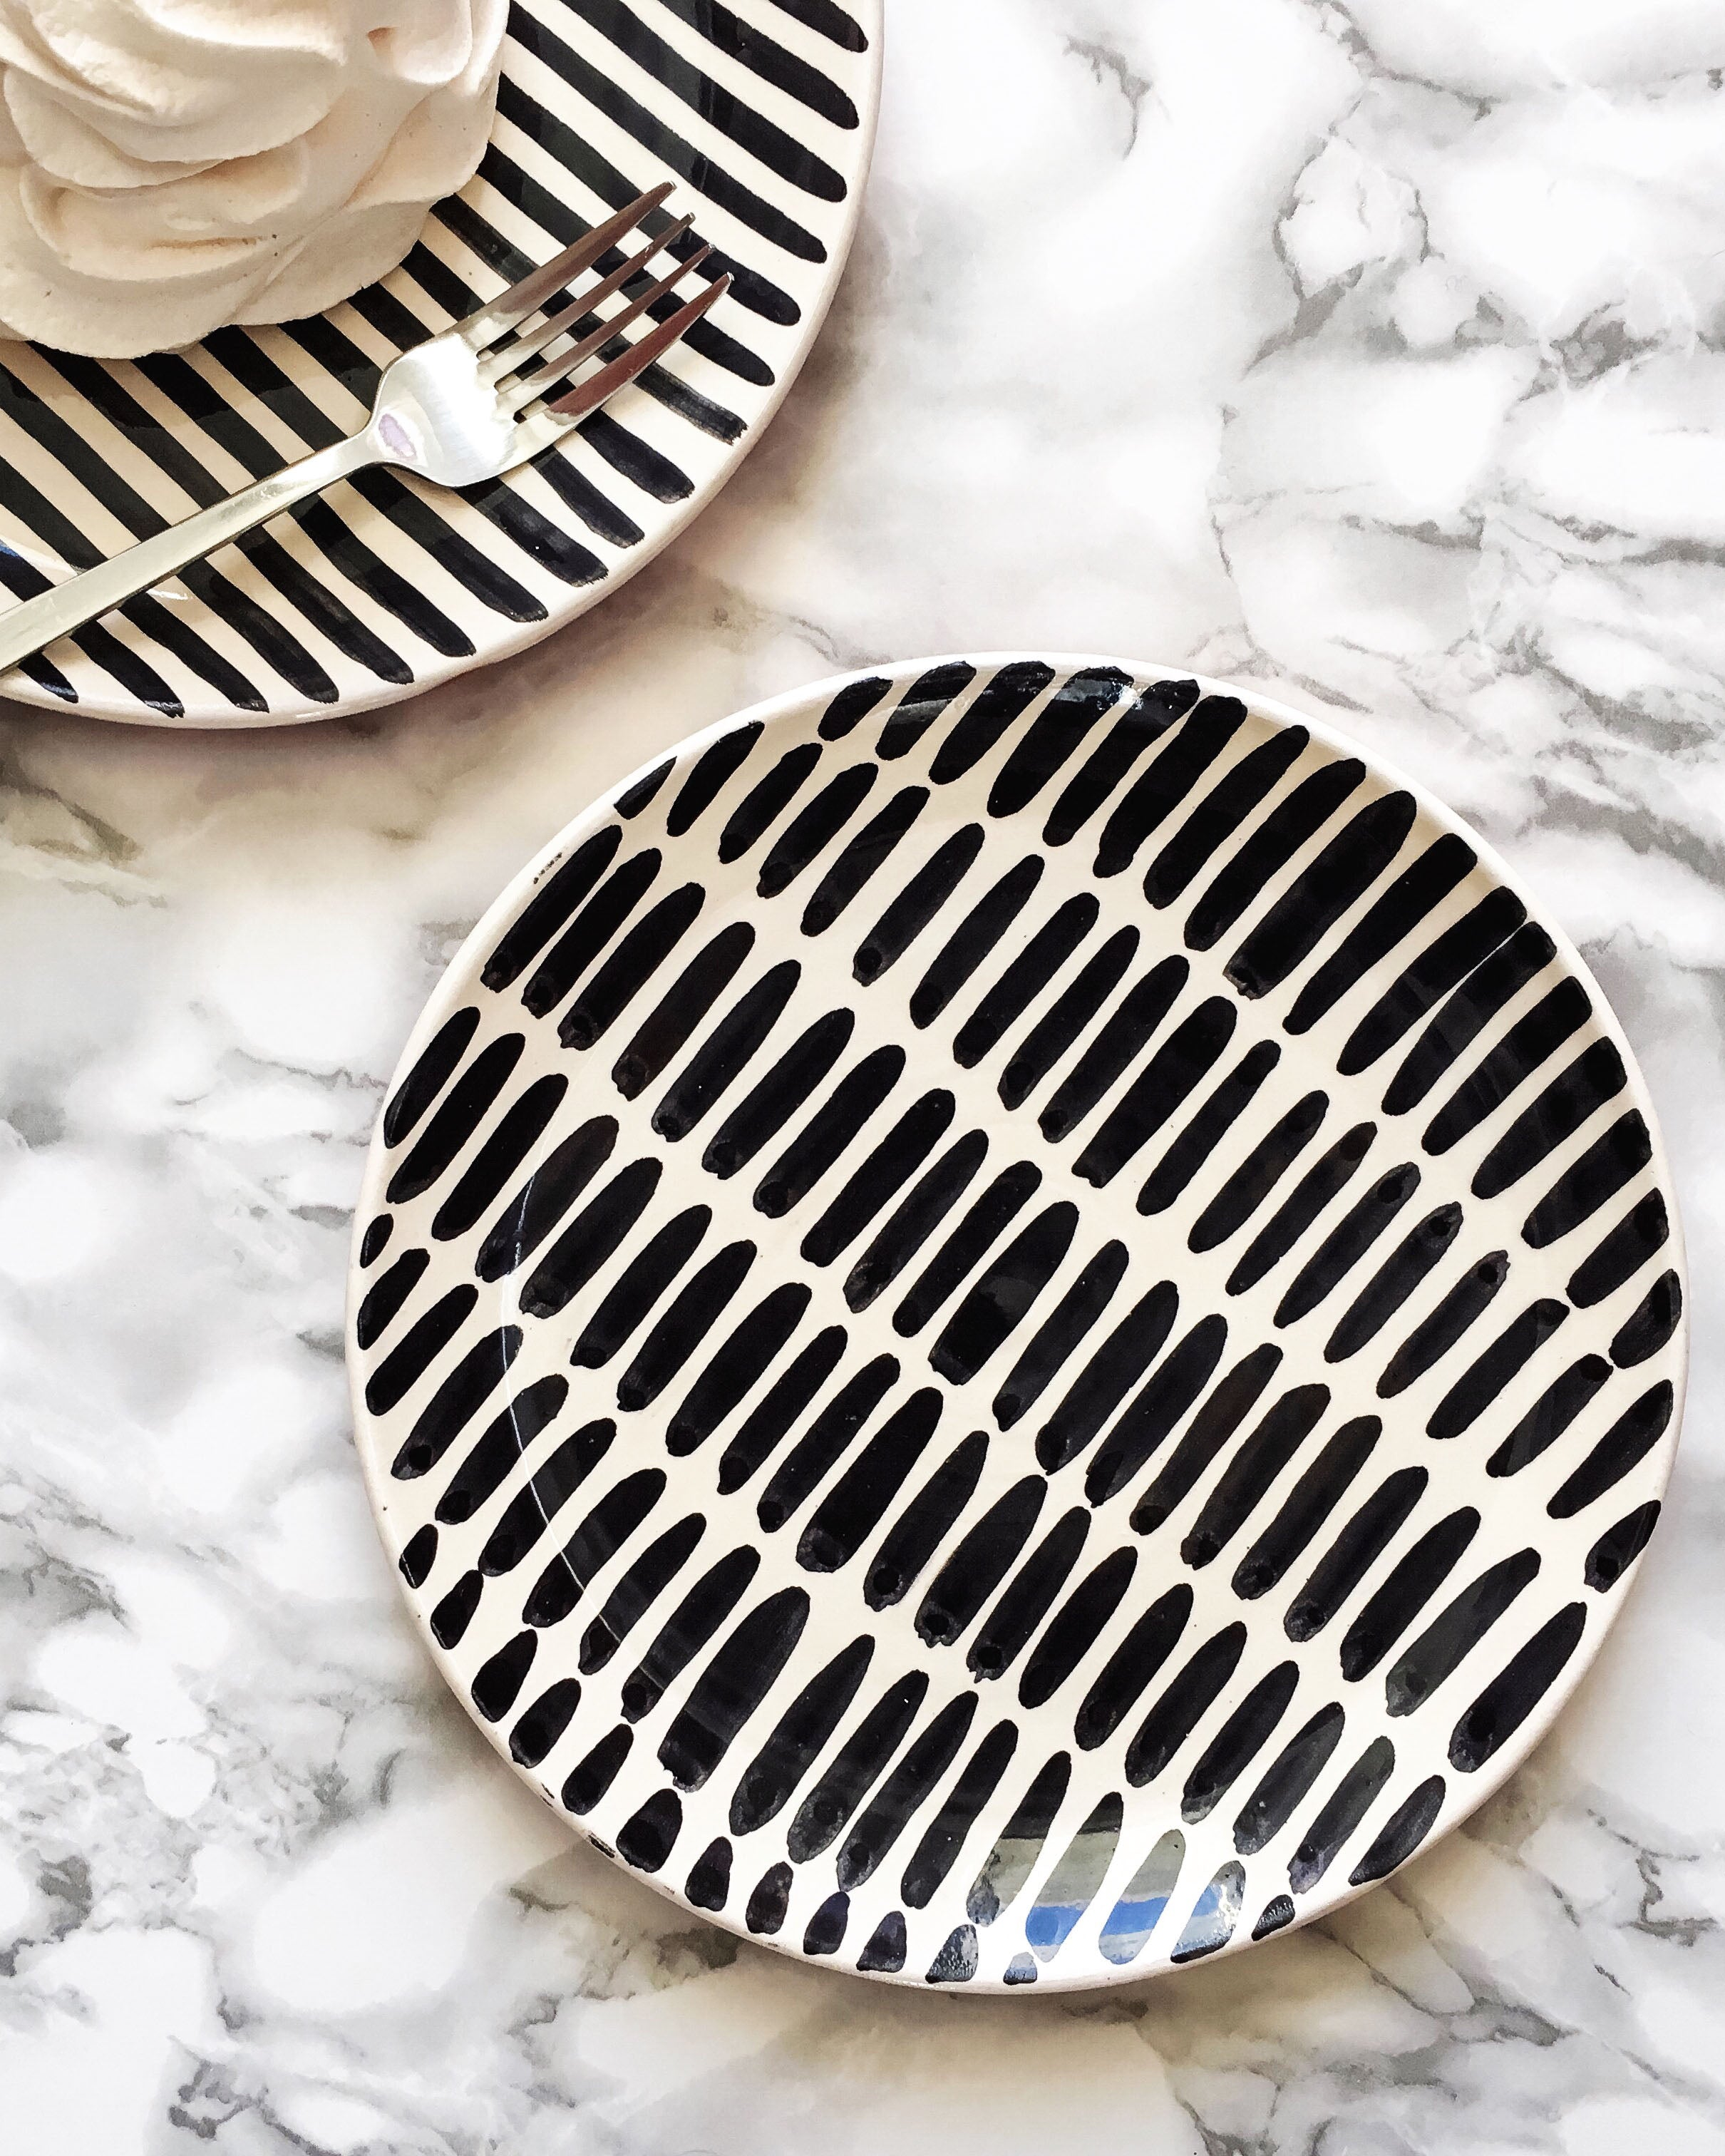 Casa Cubista Graphic Tableware - Pattern Plate- Dash